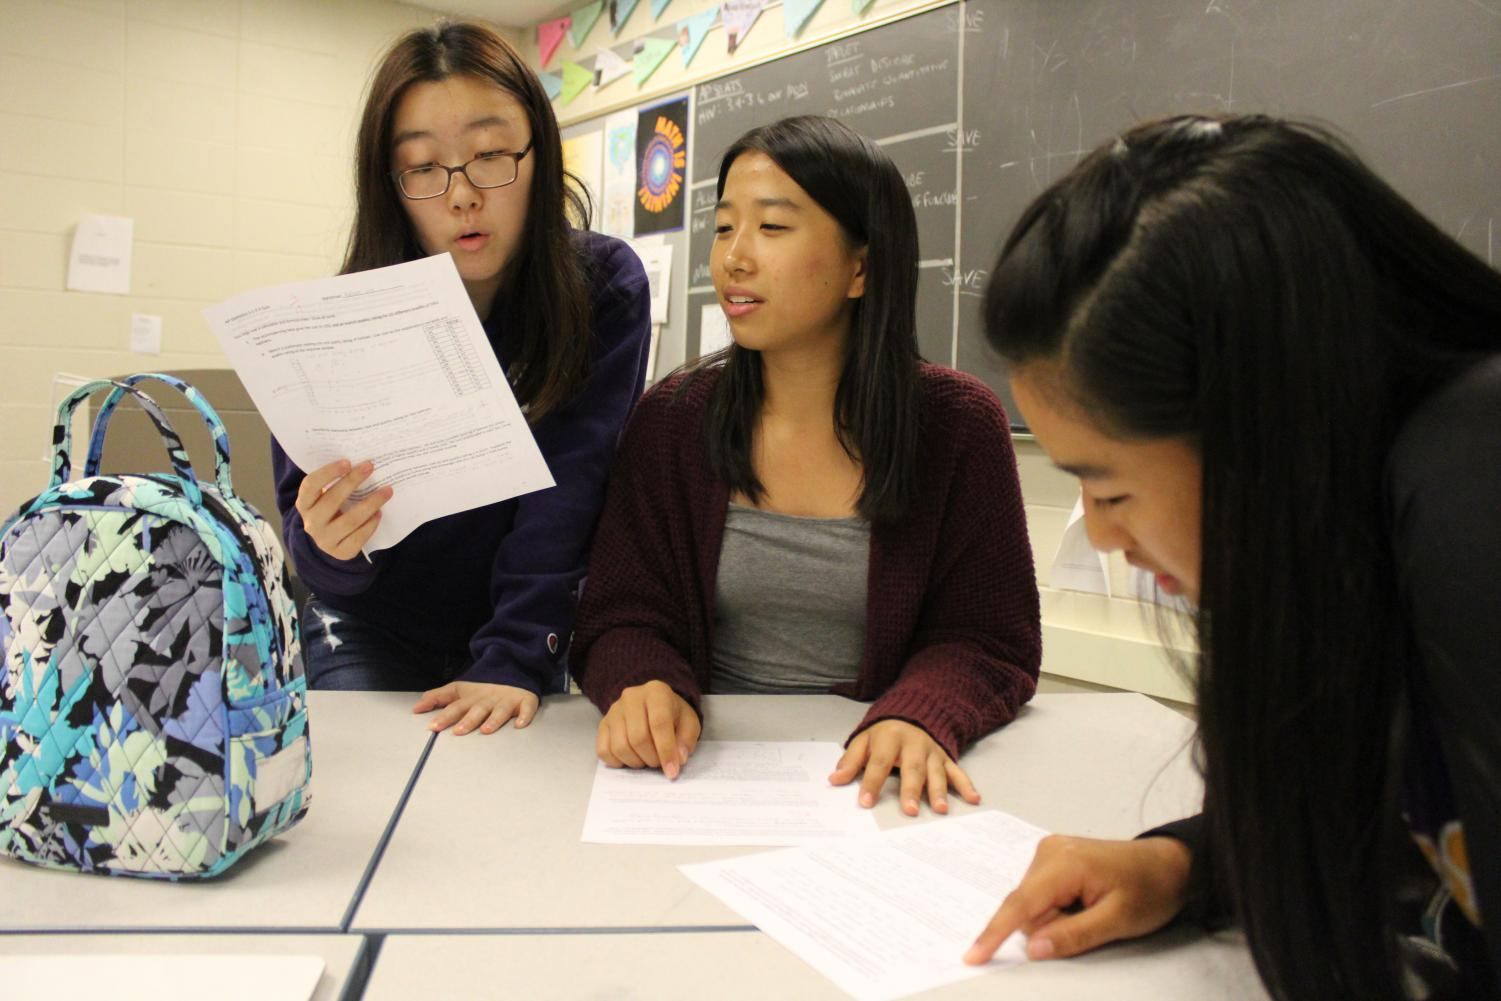 Sophomores Rachael Lee and Elizabeth Yen discuss their quiz corrections with Elizabeth's sister, Tiffany Yen. 5 underclassmen take AP Stats this year, breaking the norm, as it is a class typically taken by upperclassmen.